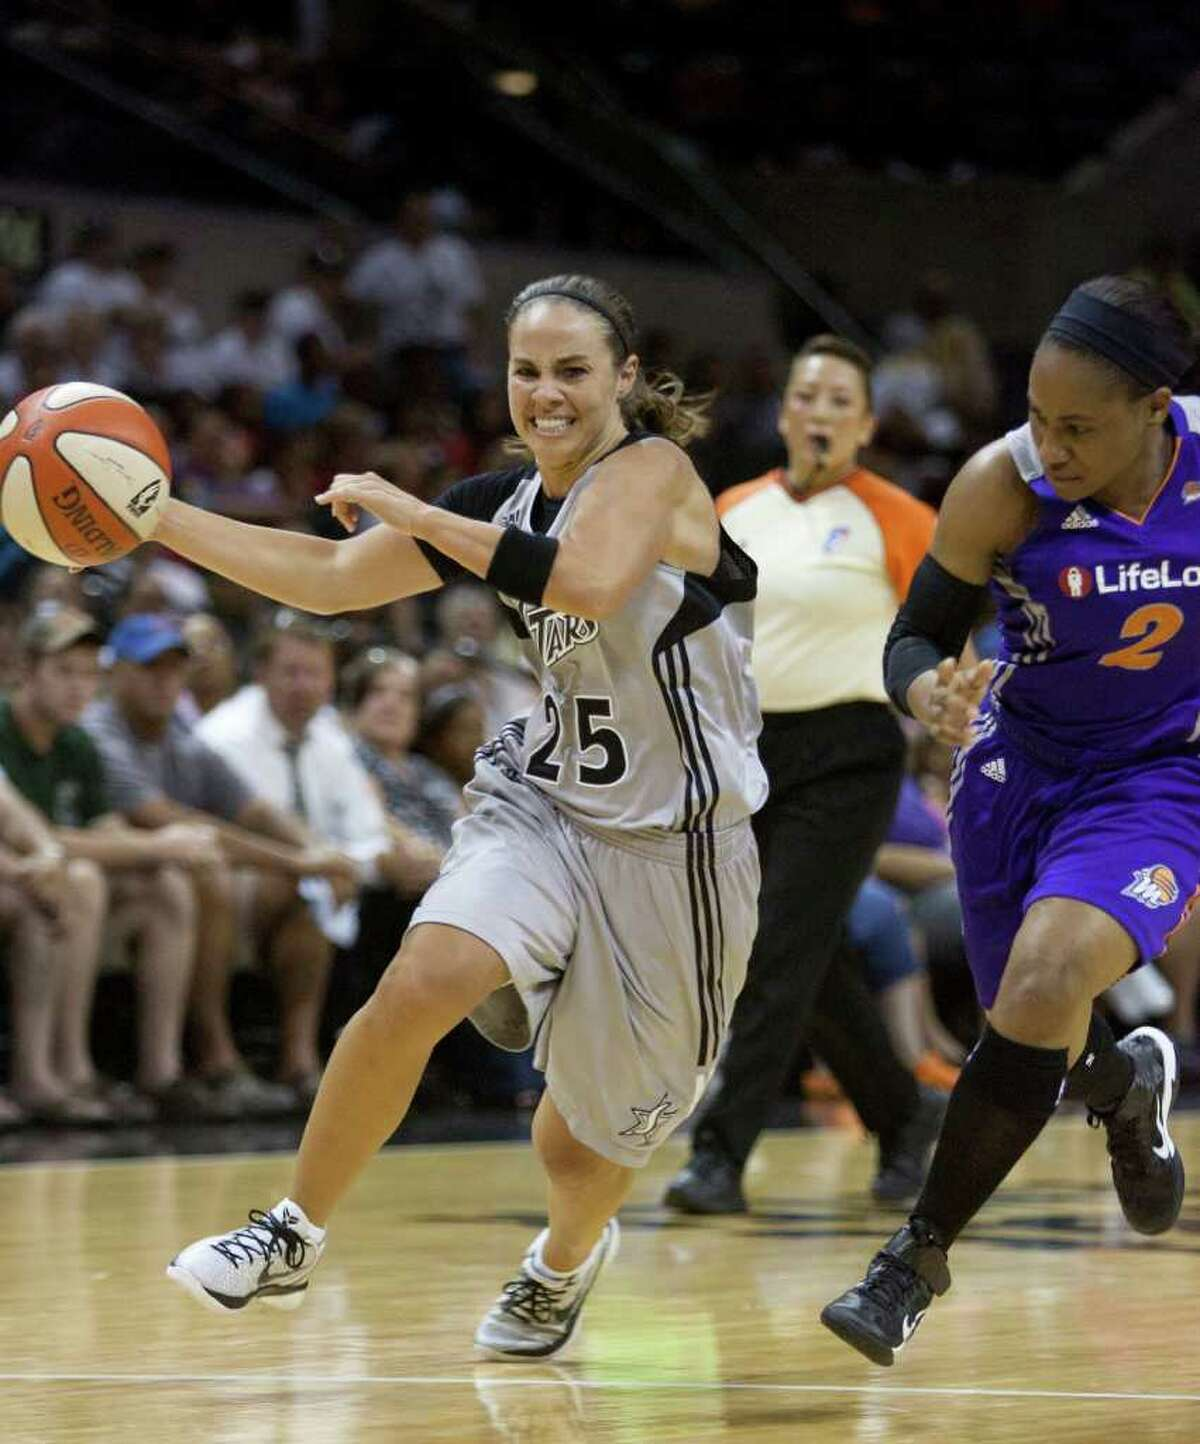 Silver Stars guard Becky Hammon drives the lane against Phoenix Mercury guard Temeka Johnson on Thursday, July 28, 2011 at the AT&T Center. Hammon had 33 points in the Silver Stars' 102-91 victory.